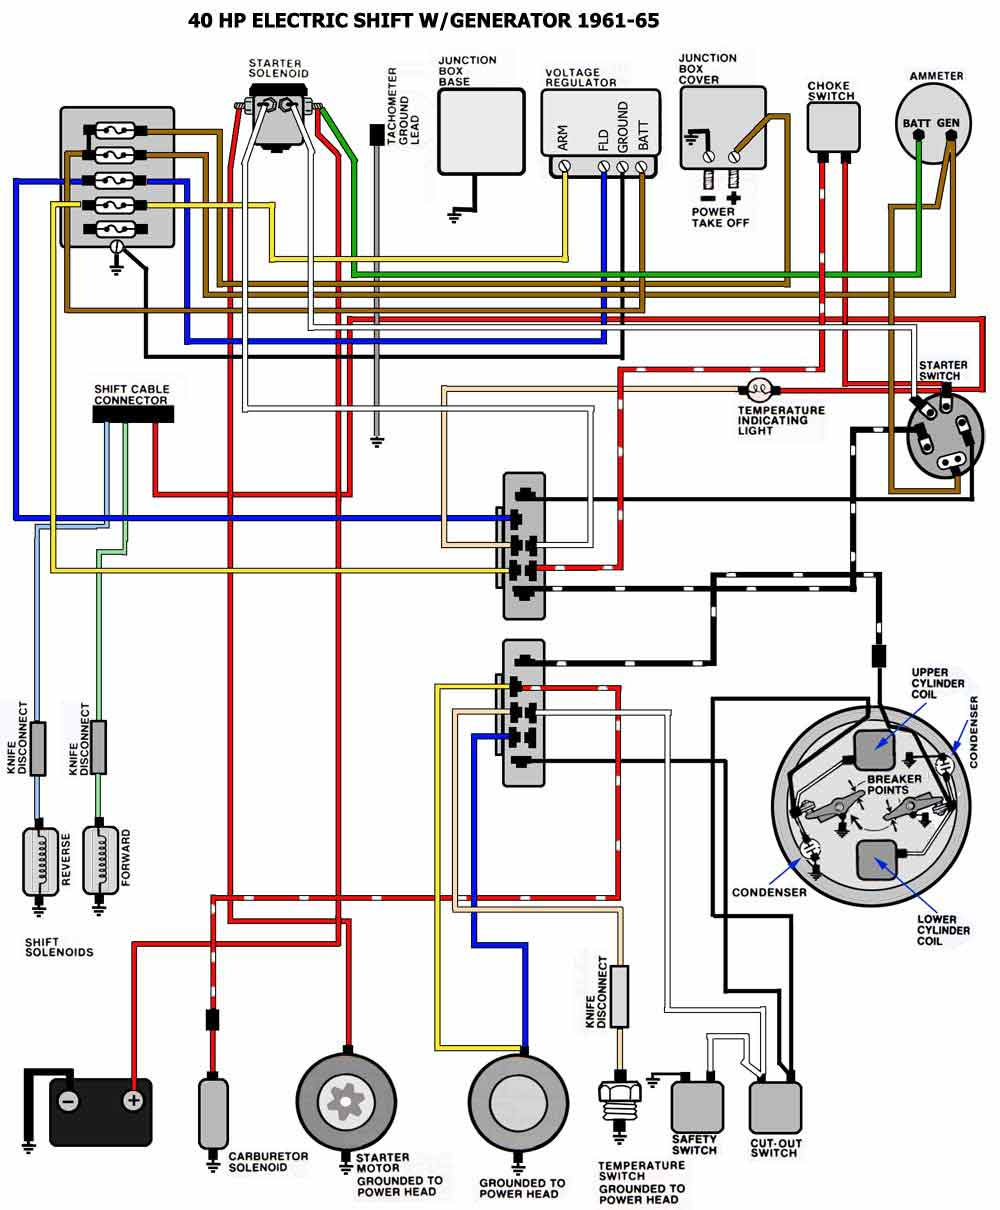 1986 evinrude 90 hp wiring diagram free picture evinrude johnson outboard wiring diagrams -- mastertech ... 1986 f150 fuel gauge wiring diagram free picture